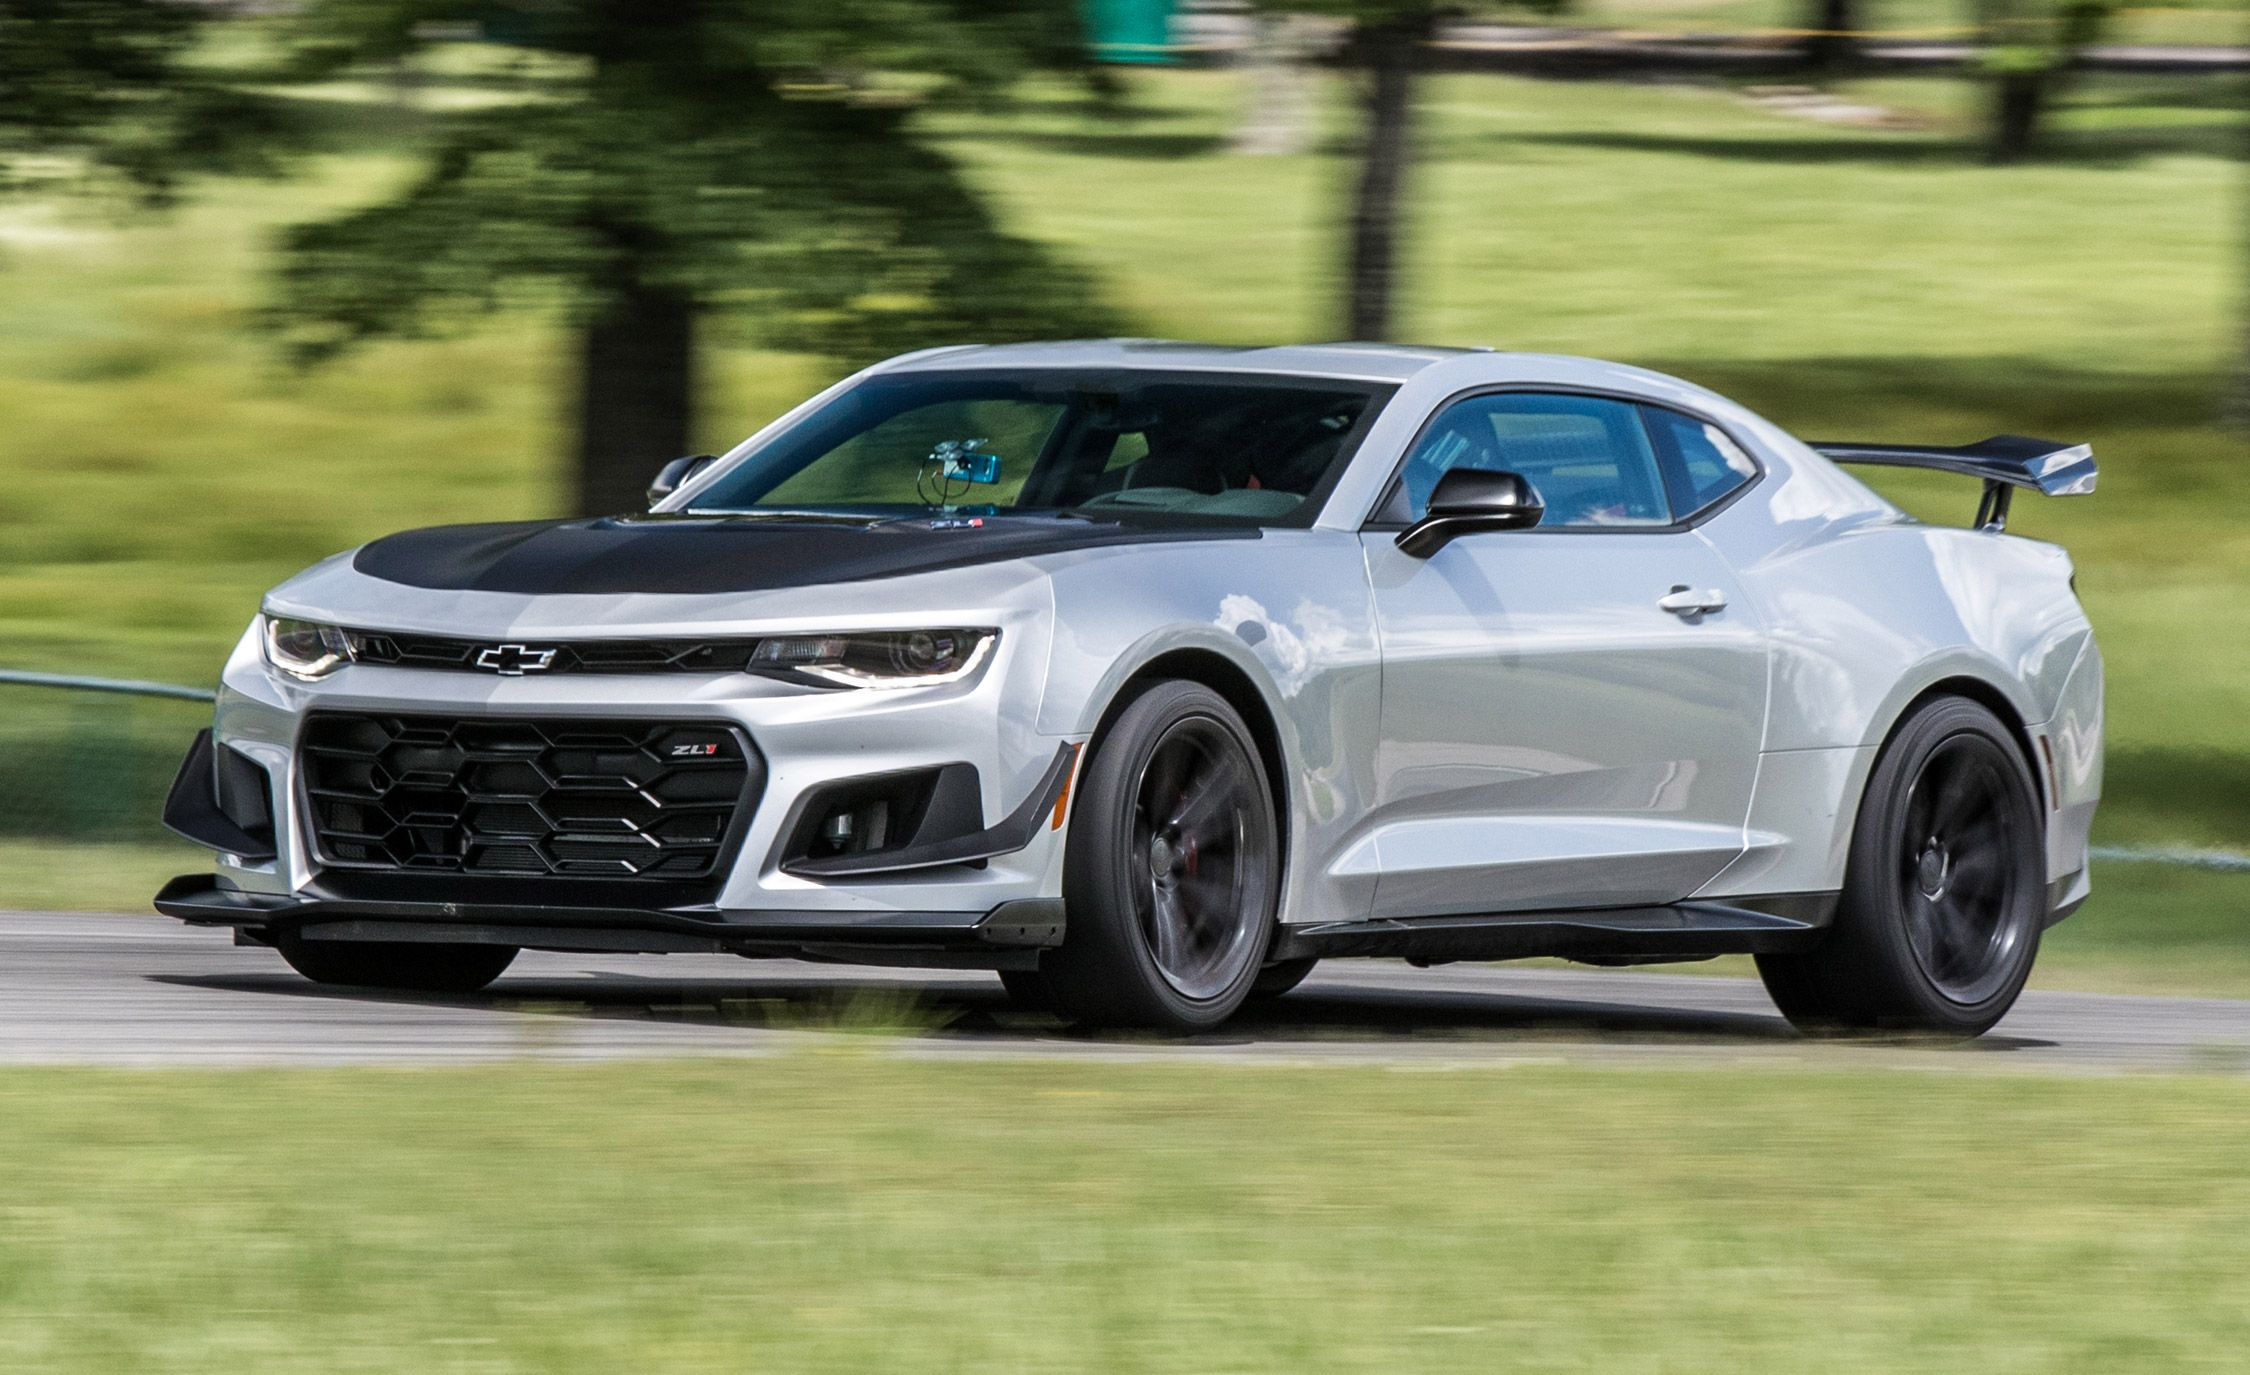 Chevrolet Camaro Zl1 1le At Lightning Lap 2017 Feature Car And Driver